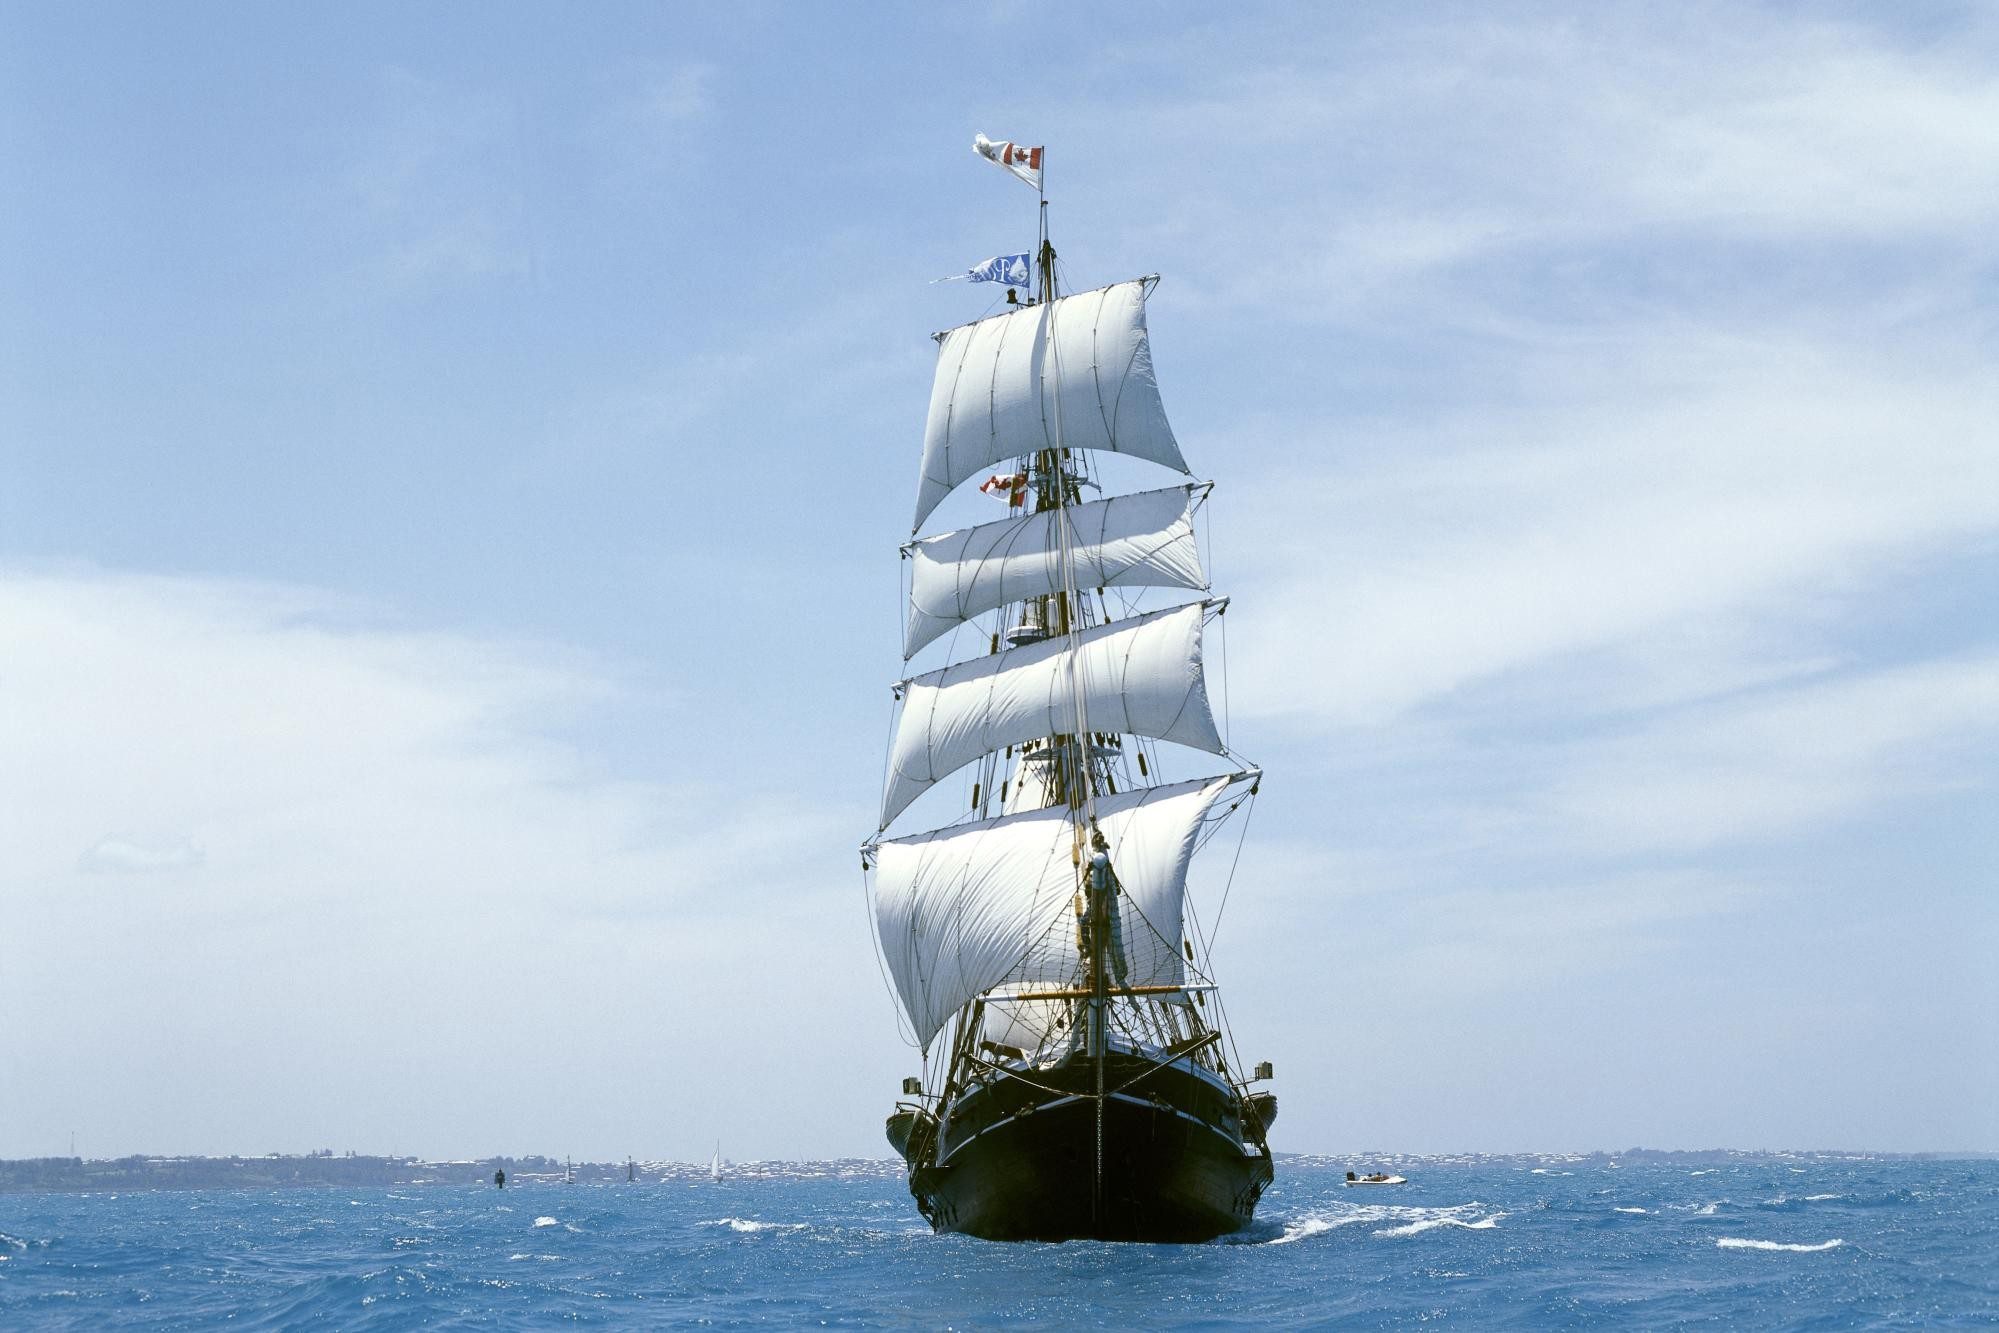 Sailing Ship Full HD Wallpaper And Background Image